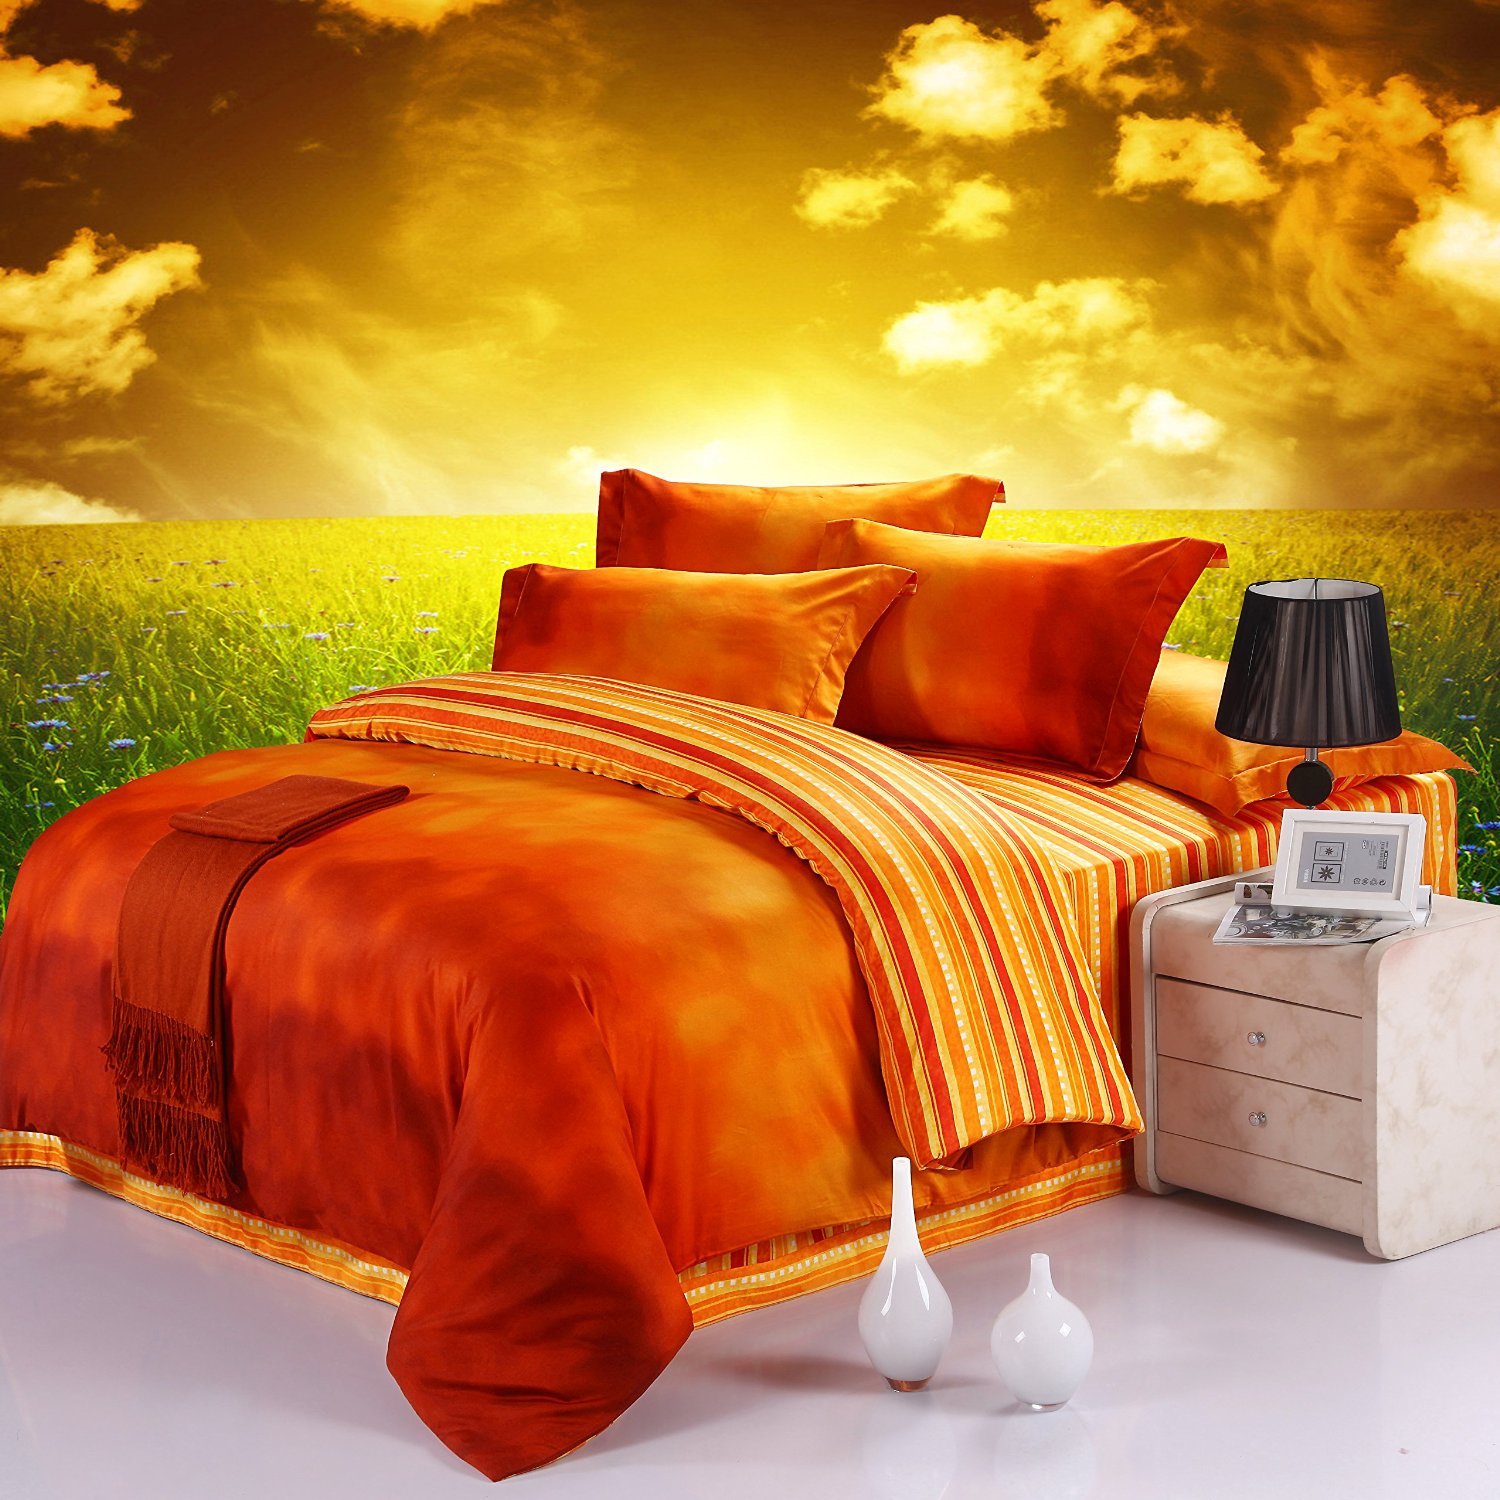 Free shipping and returns on Orange Duvet Covers & Shams at truemfilesb5q.gq